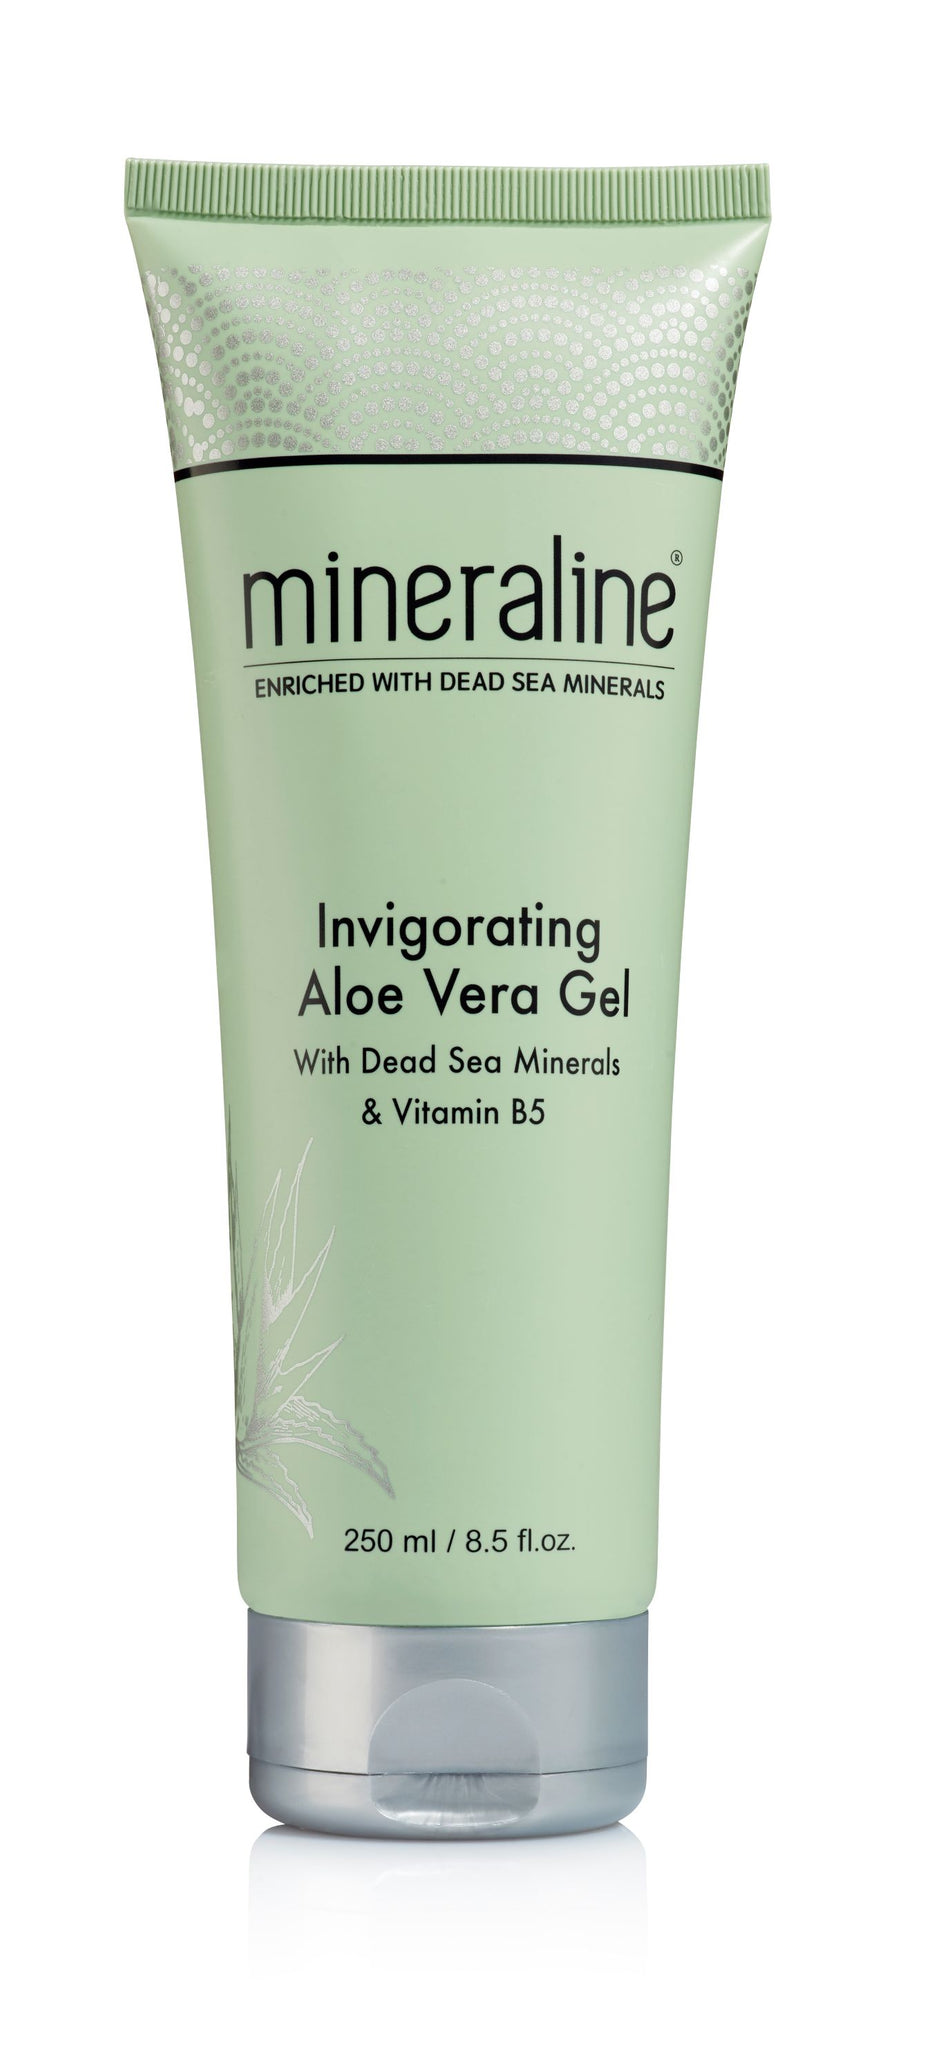 mineraline Invigorating Aloe Vera Gel